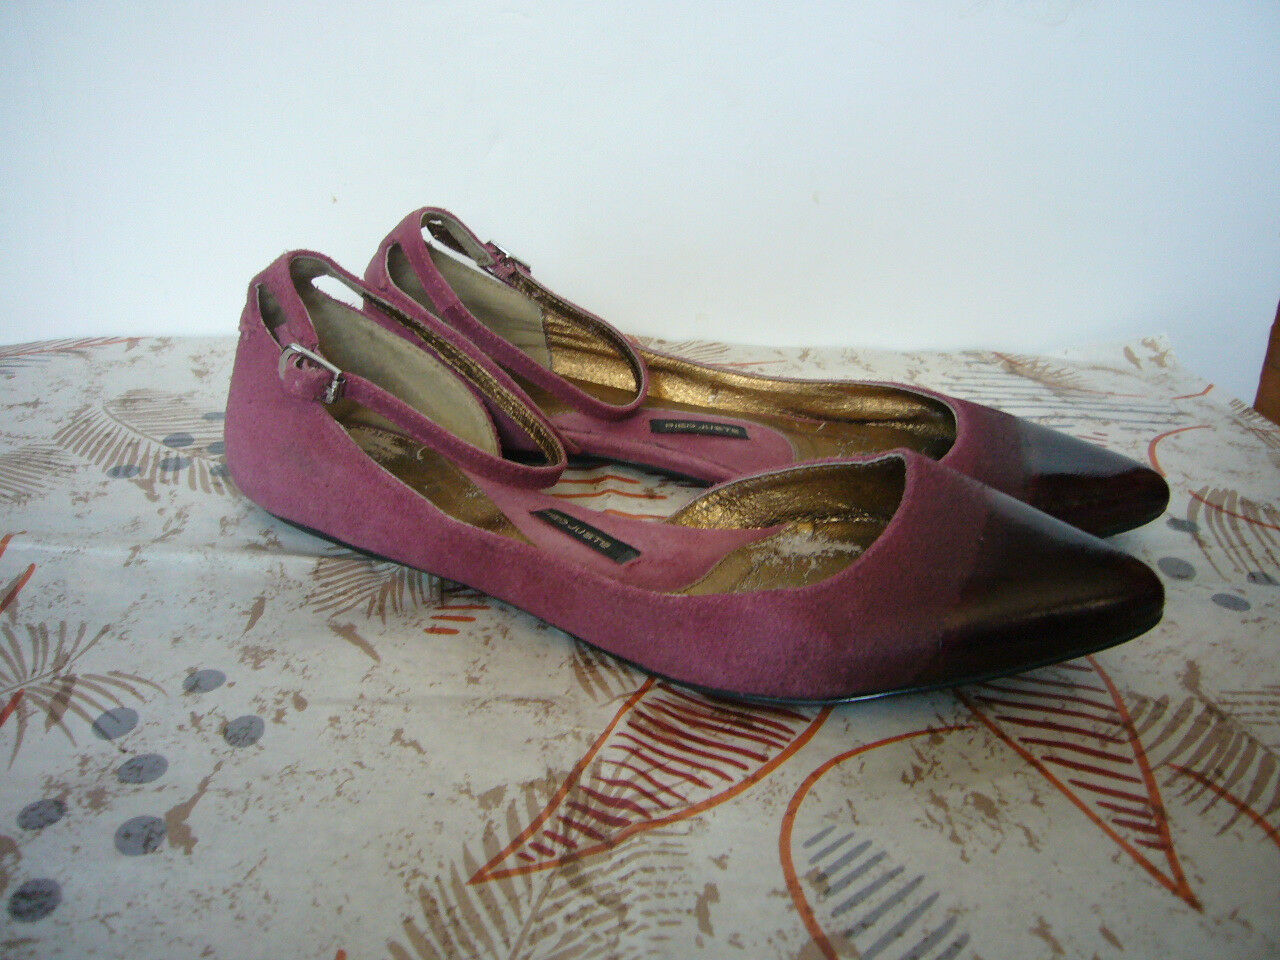 Anthropologie Pied Juste ROT Suede Flats- 9M- Ankle Strap Cap toe- To Die 4  EUC